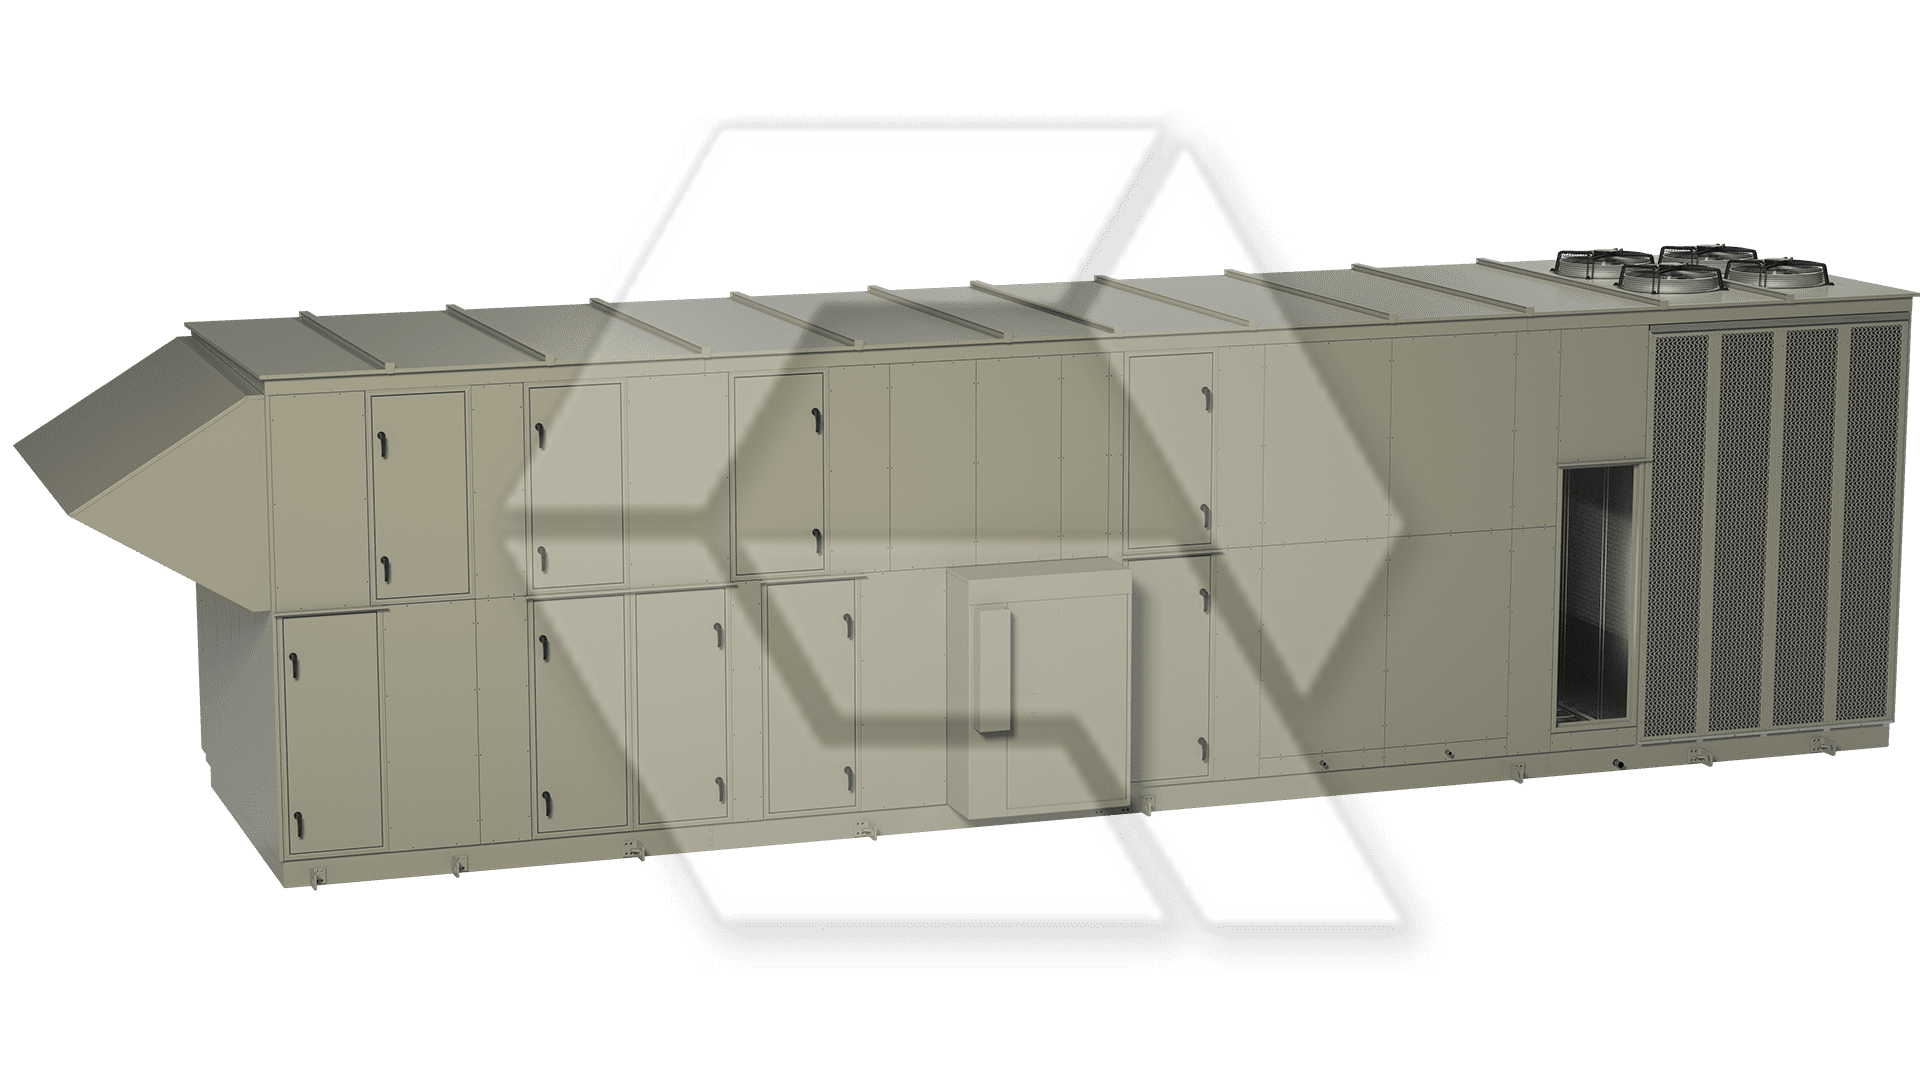 Innovent AHU 7595062- 00140 - LASER II Closed View